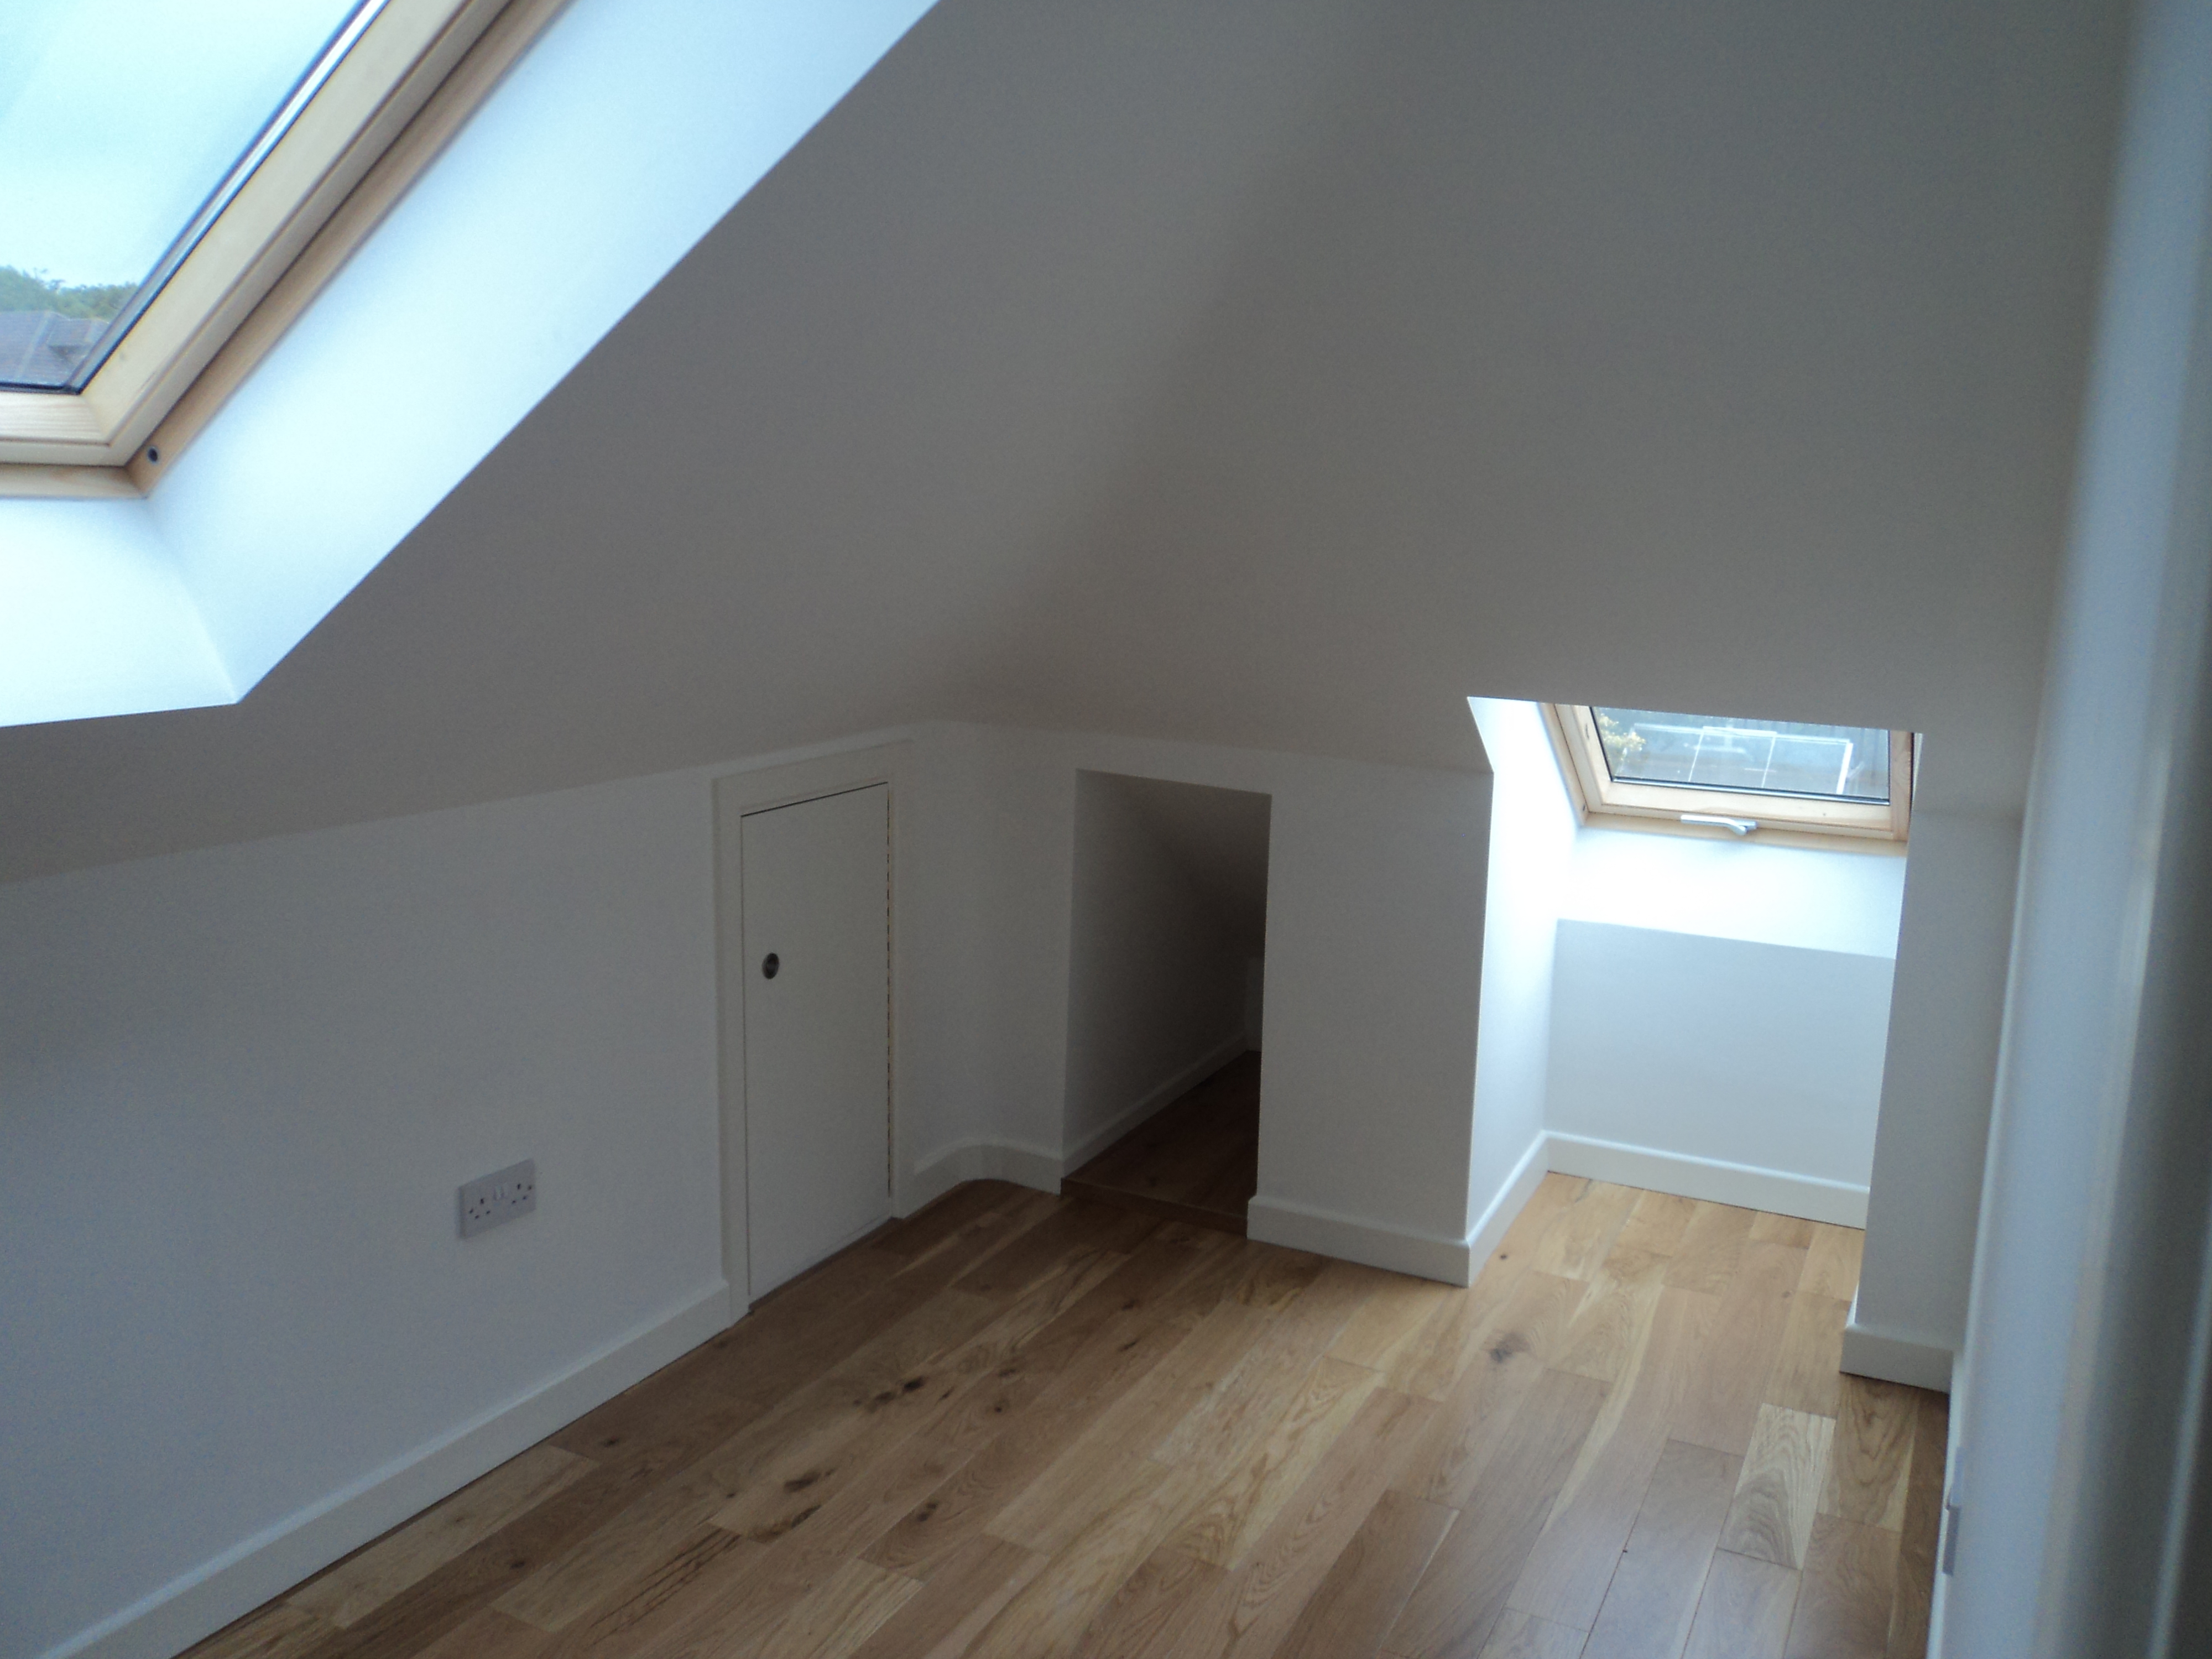 ttic loft conversion with new staircase in Redcross, Co. Wicklow